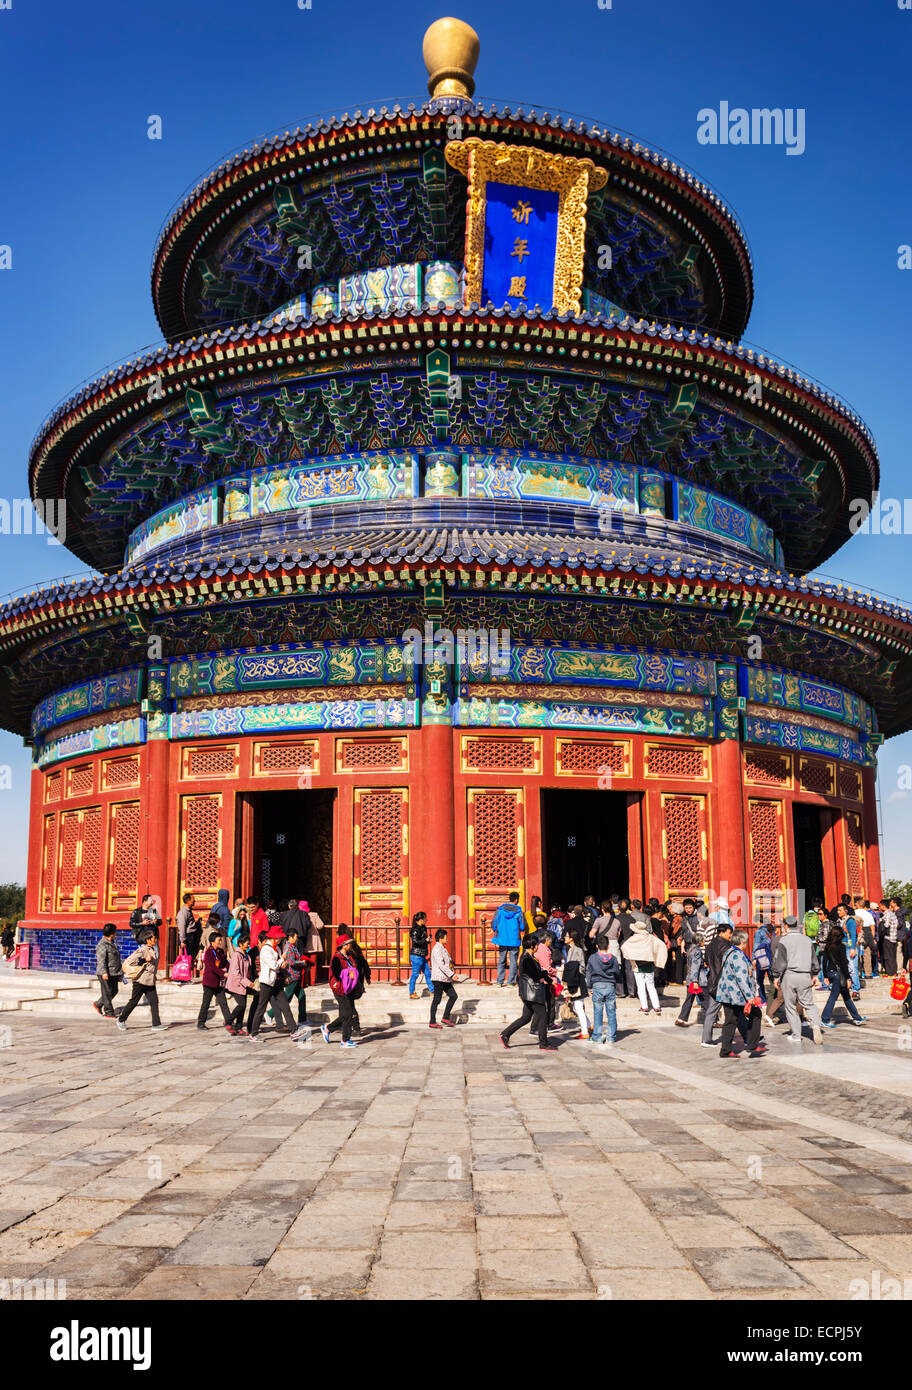 The Temple of Heaven, Hall of Prayer building in Beijing, China 2014 - Stock Image